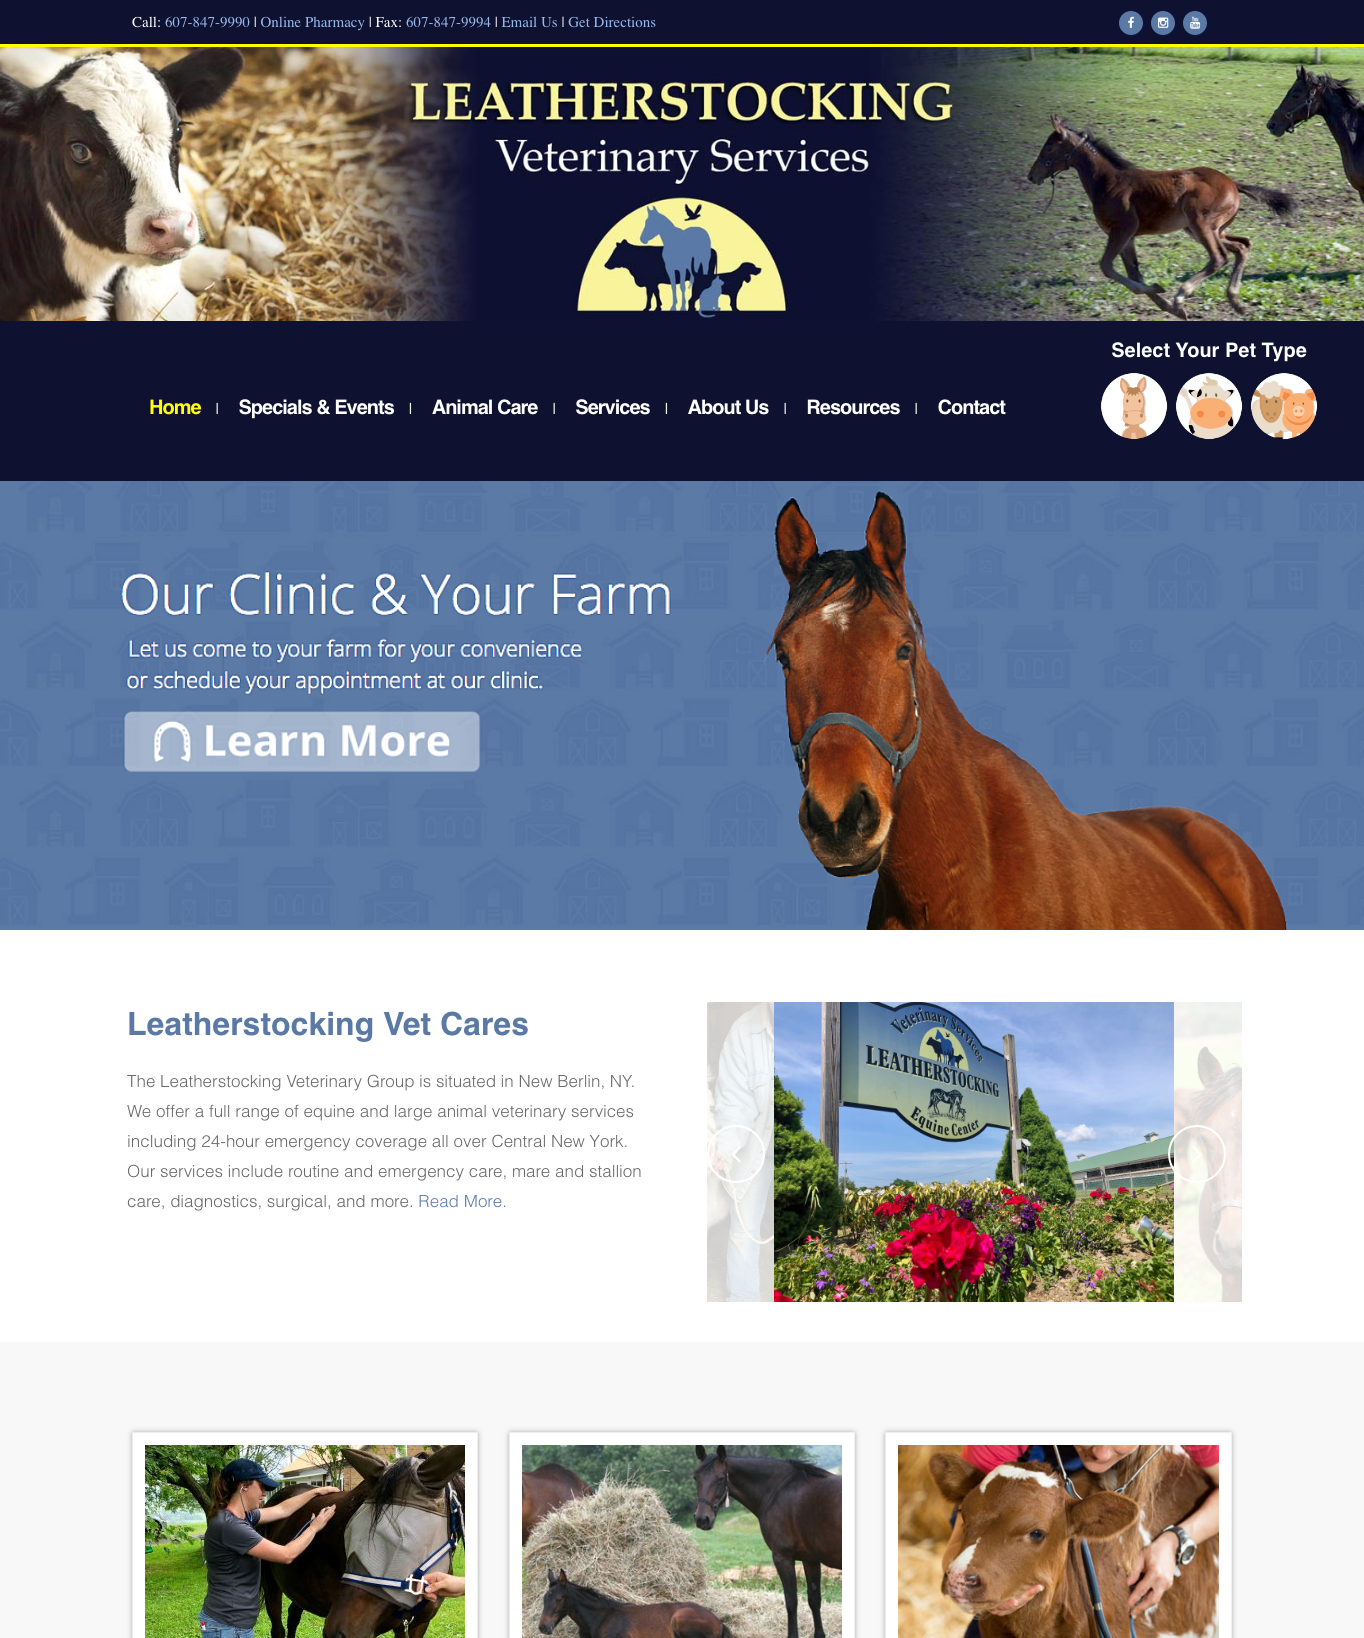 Leatherstocking Veterinary Group